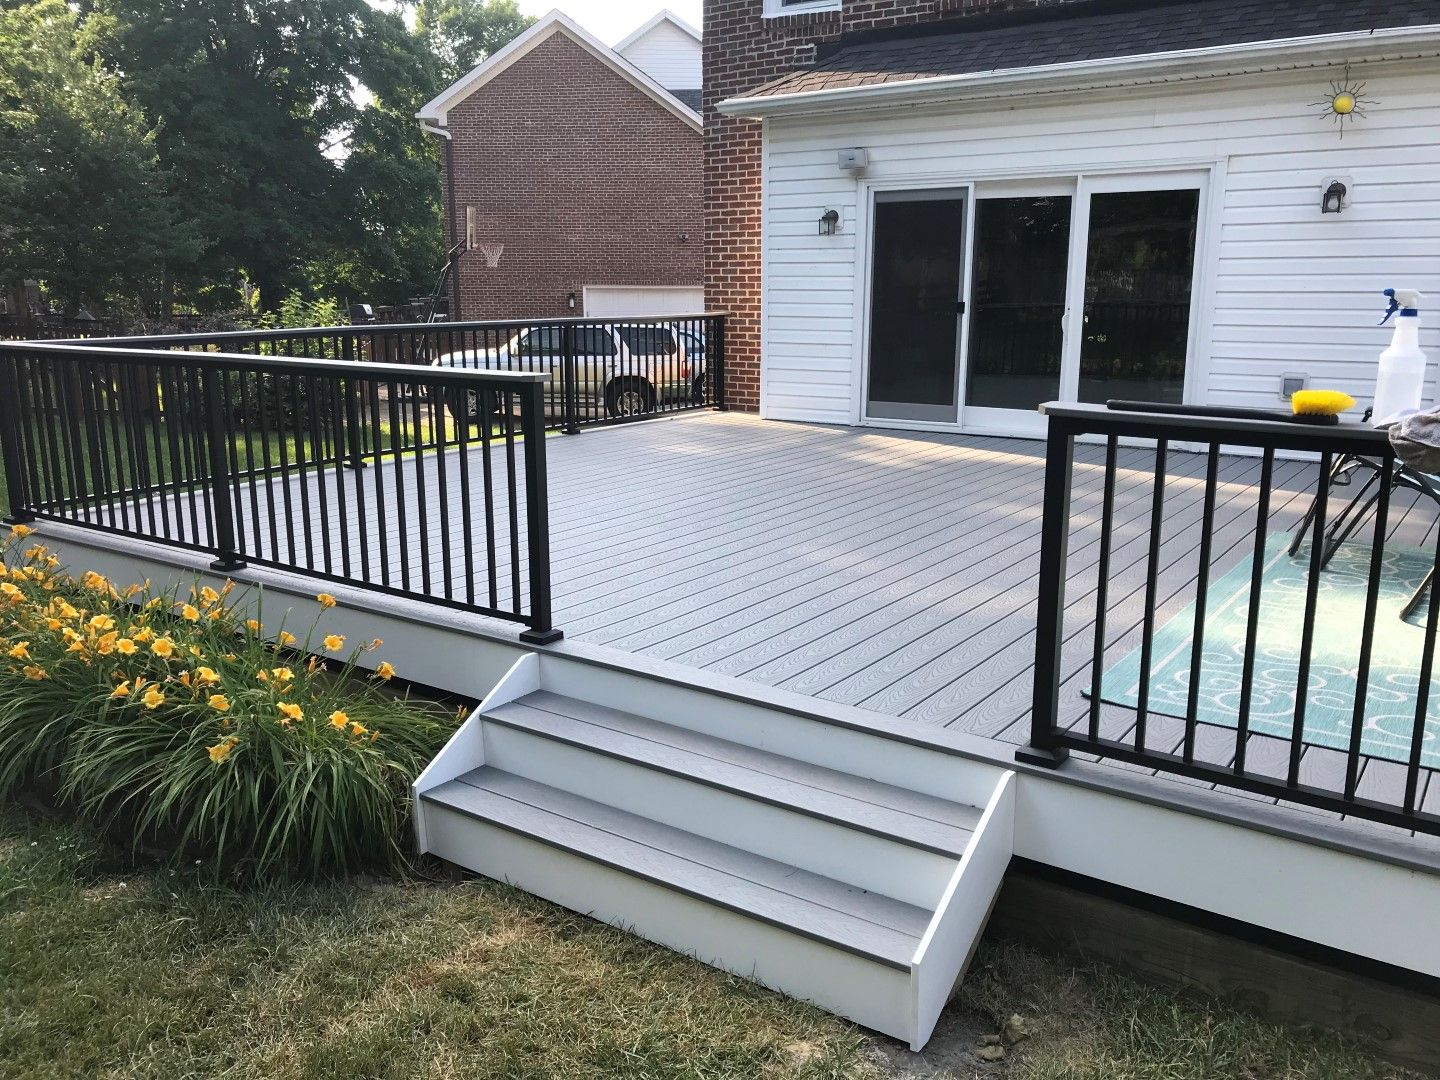 Composite decking has certain benefits such as durability